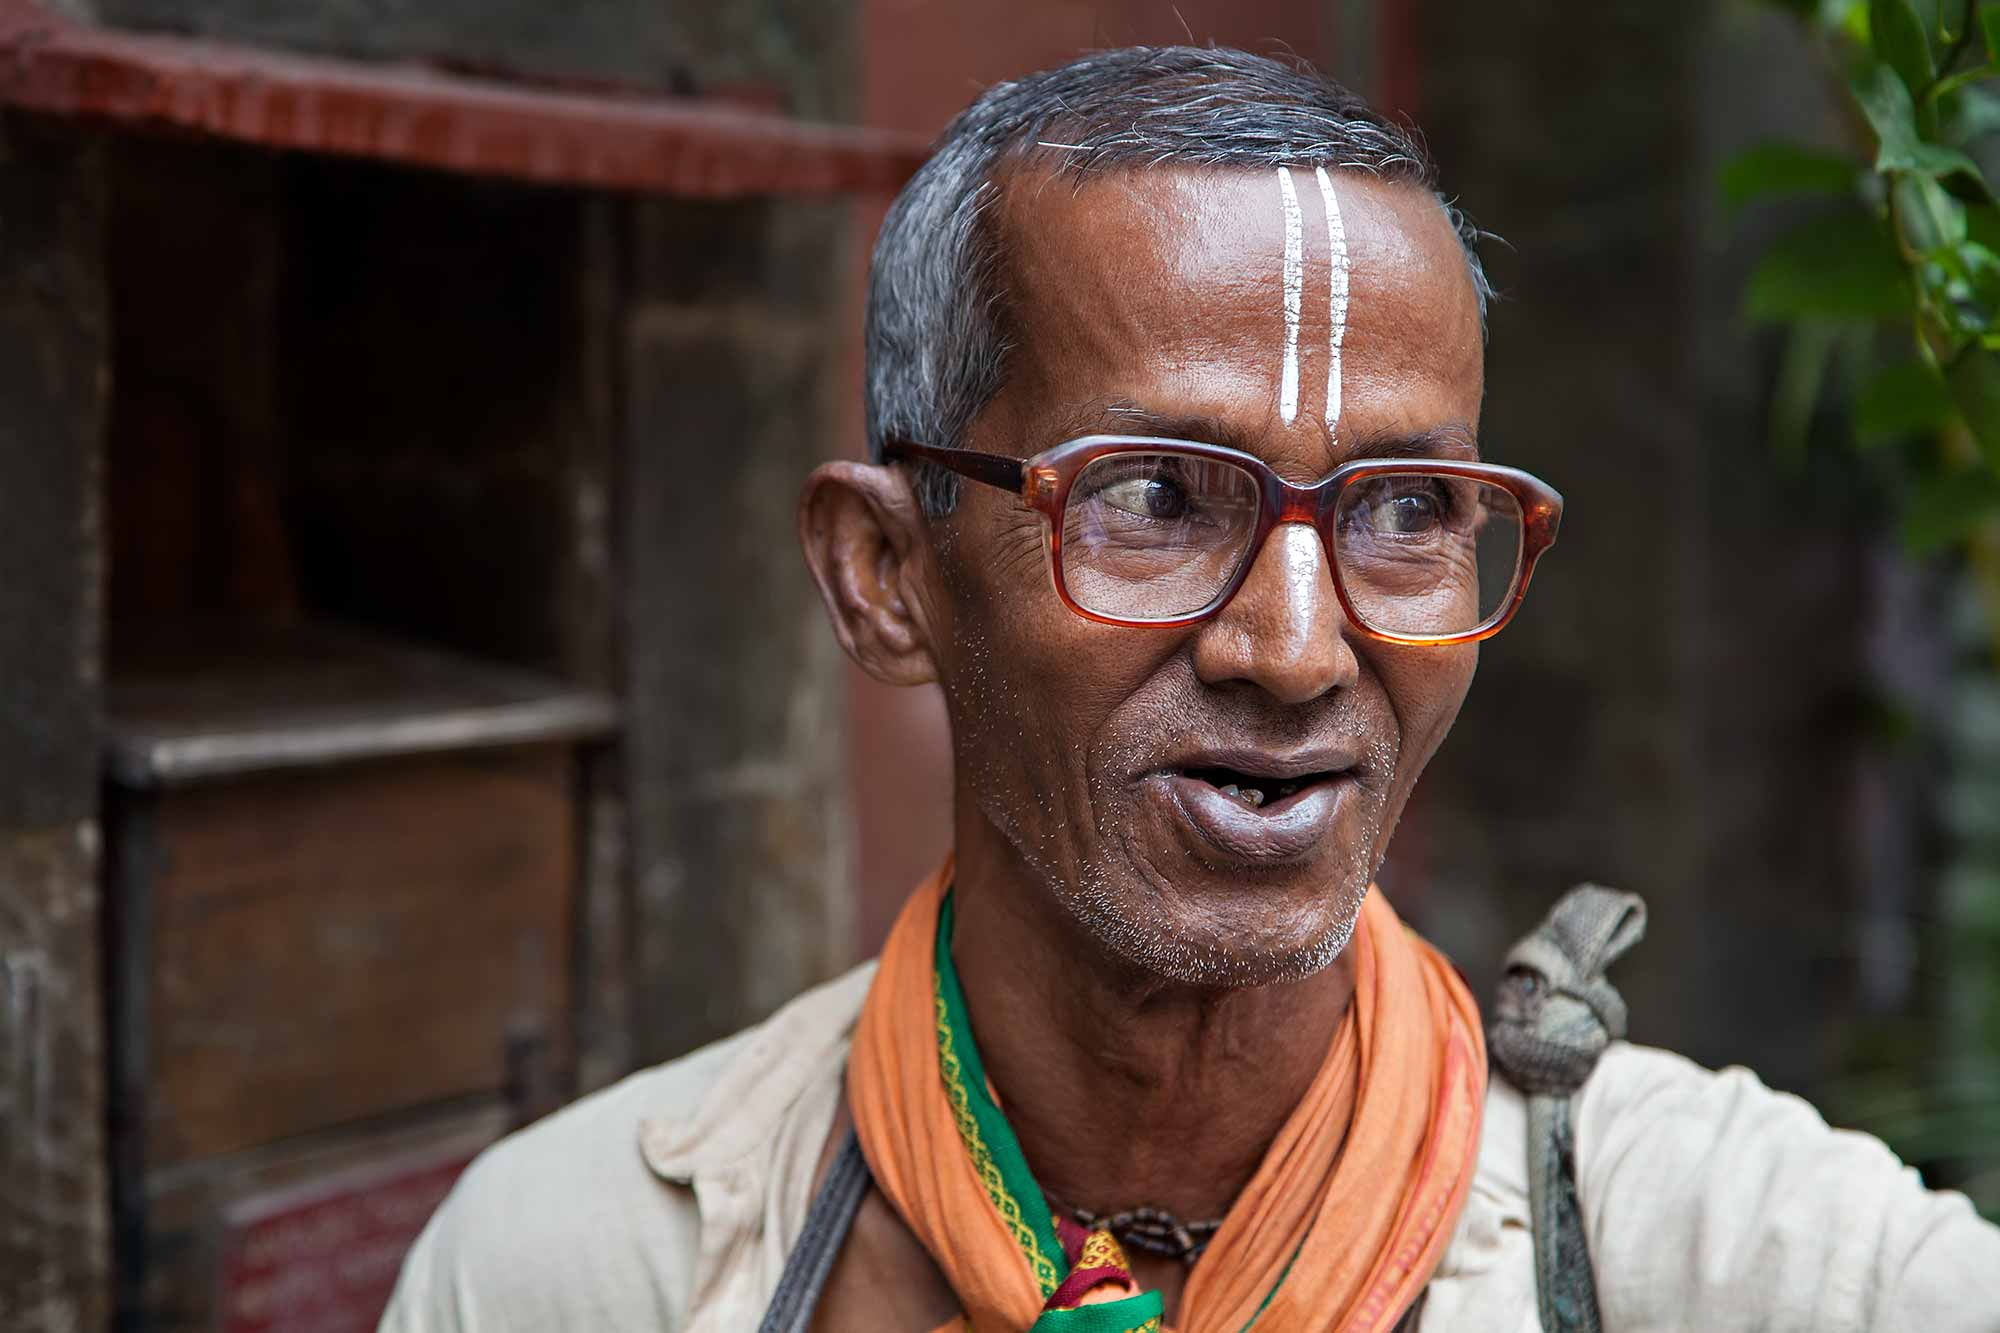 portrait-man-with-glasses-kolkata-india